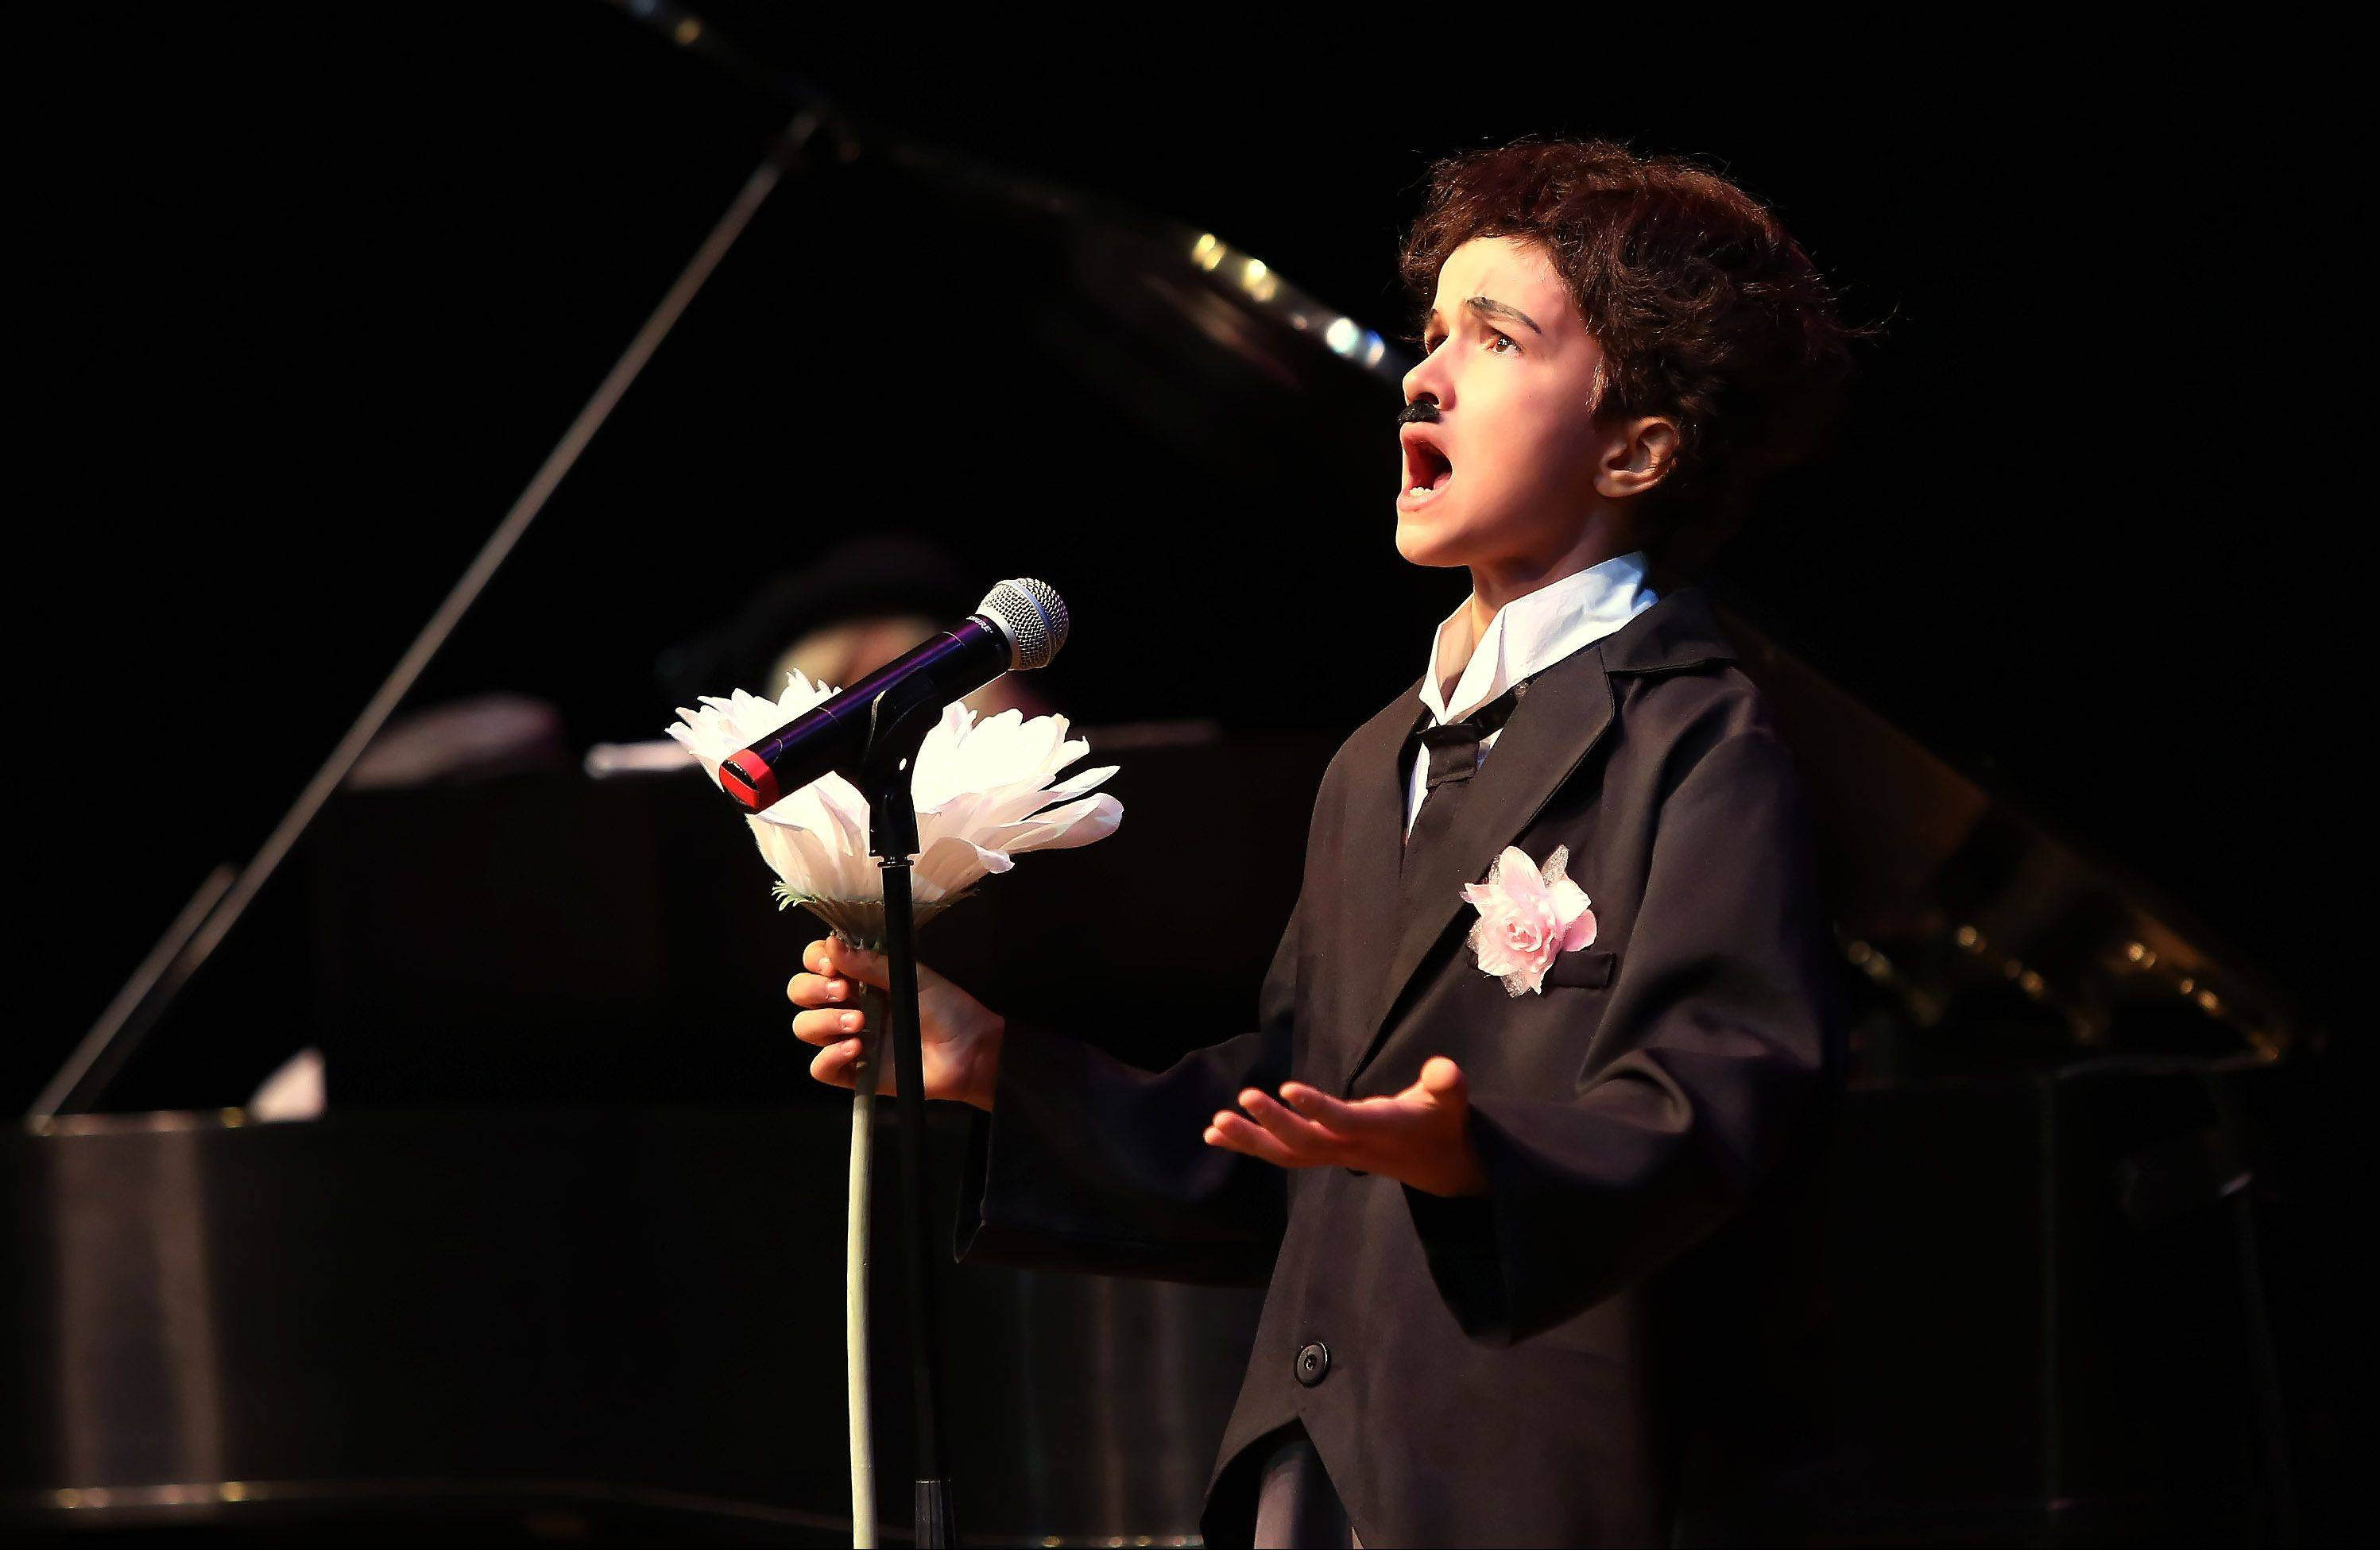 Sheridan Archbold of Yorkville sings during Suburban Chicago's Got Talent competition Sunday night at the Metropolis Performing Arts Centre in Arlington Heights. The summer long talent contest is presented by the Daily Herald and sponsored by the Arlington Heights Chamber of Commerce.